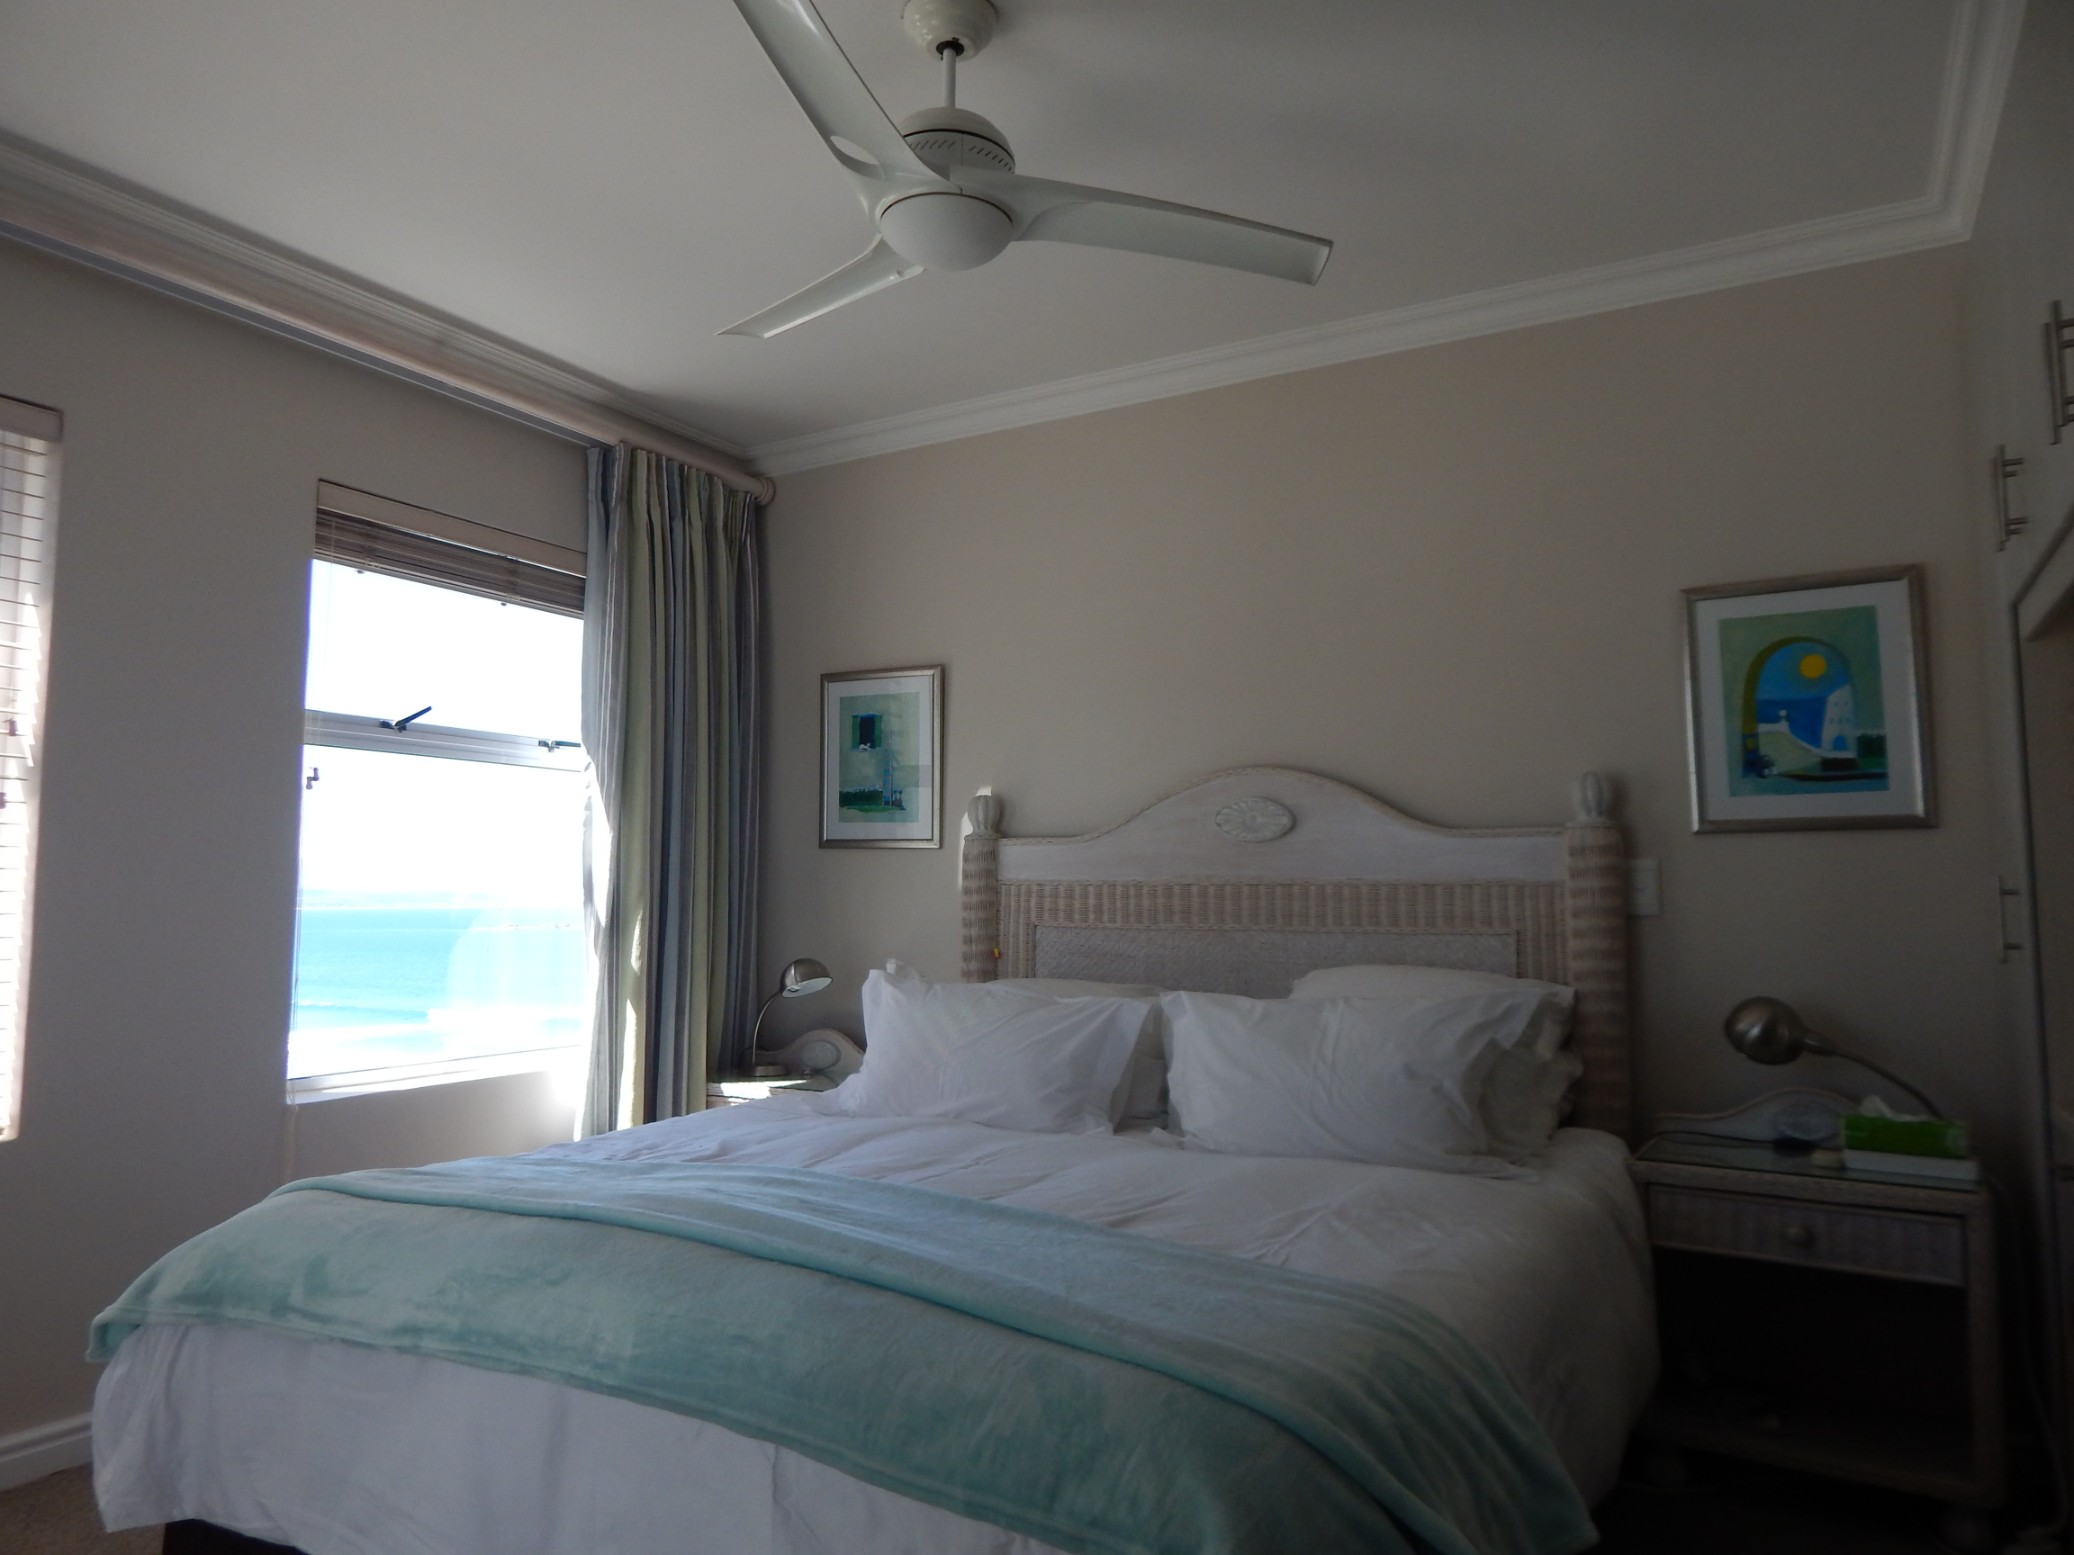 3 Bedroom Apartment for sale in Diaz Beach ENT0069020 : photo#22